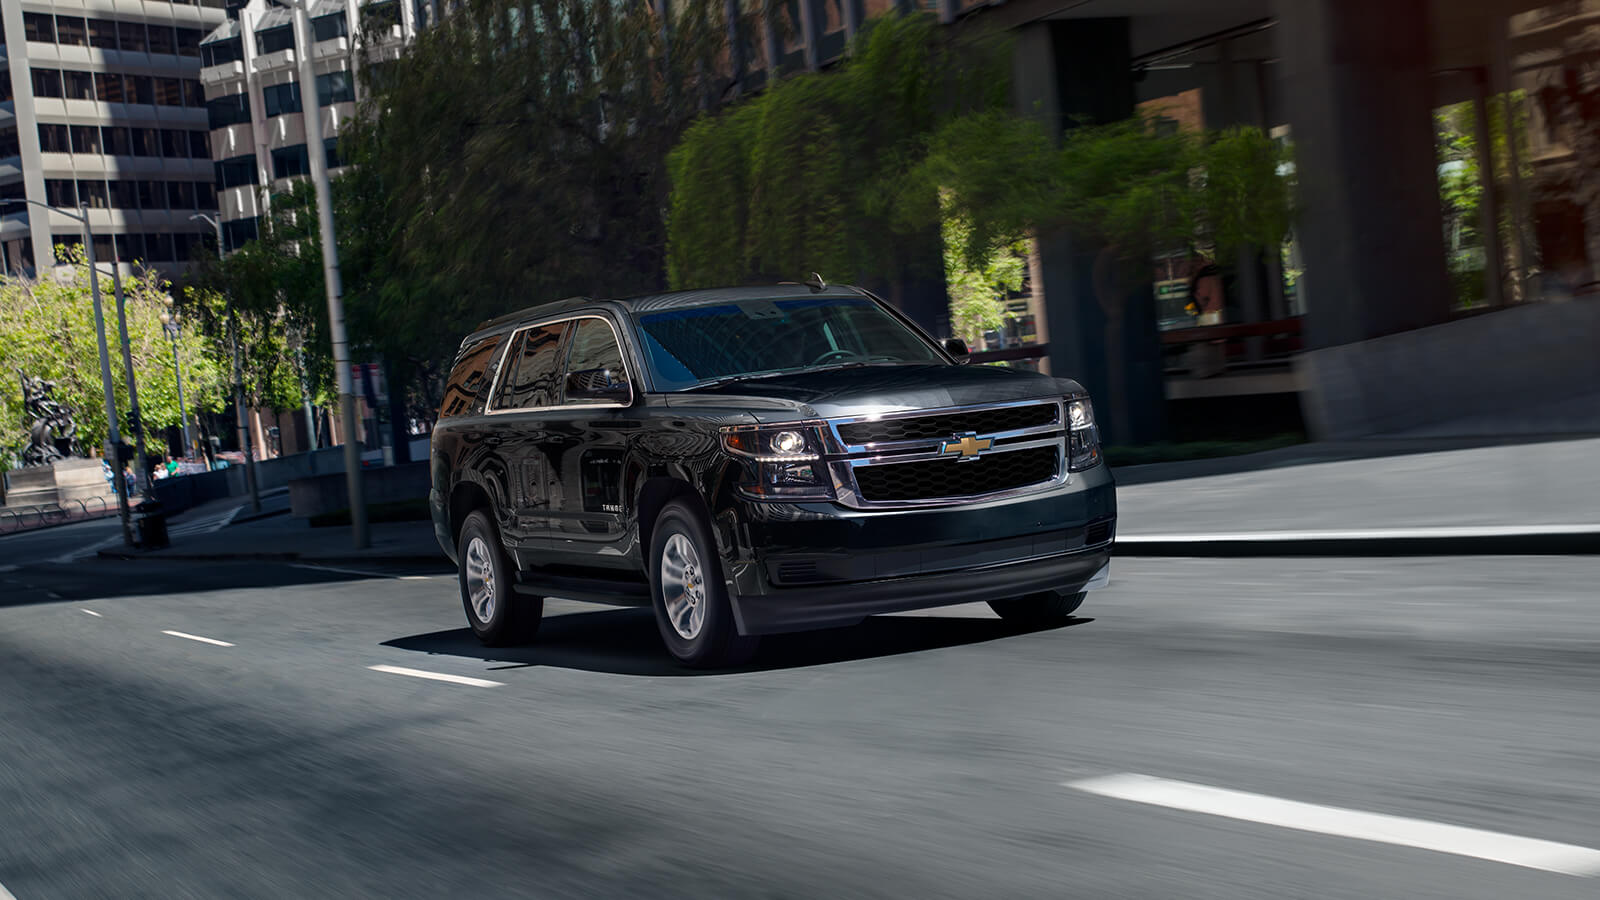 2019 Chevy Tahoe - Black